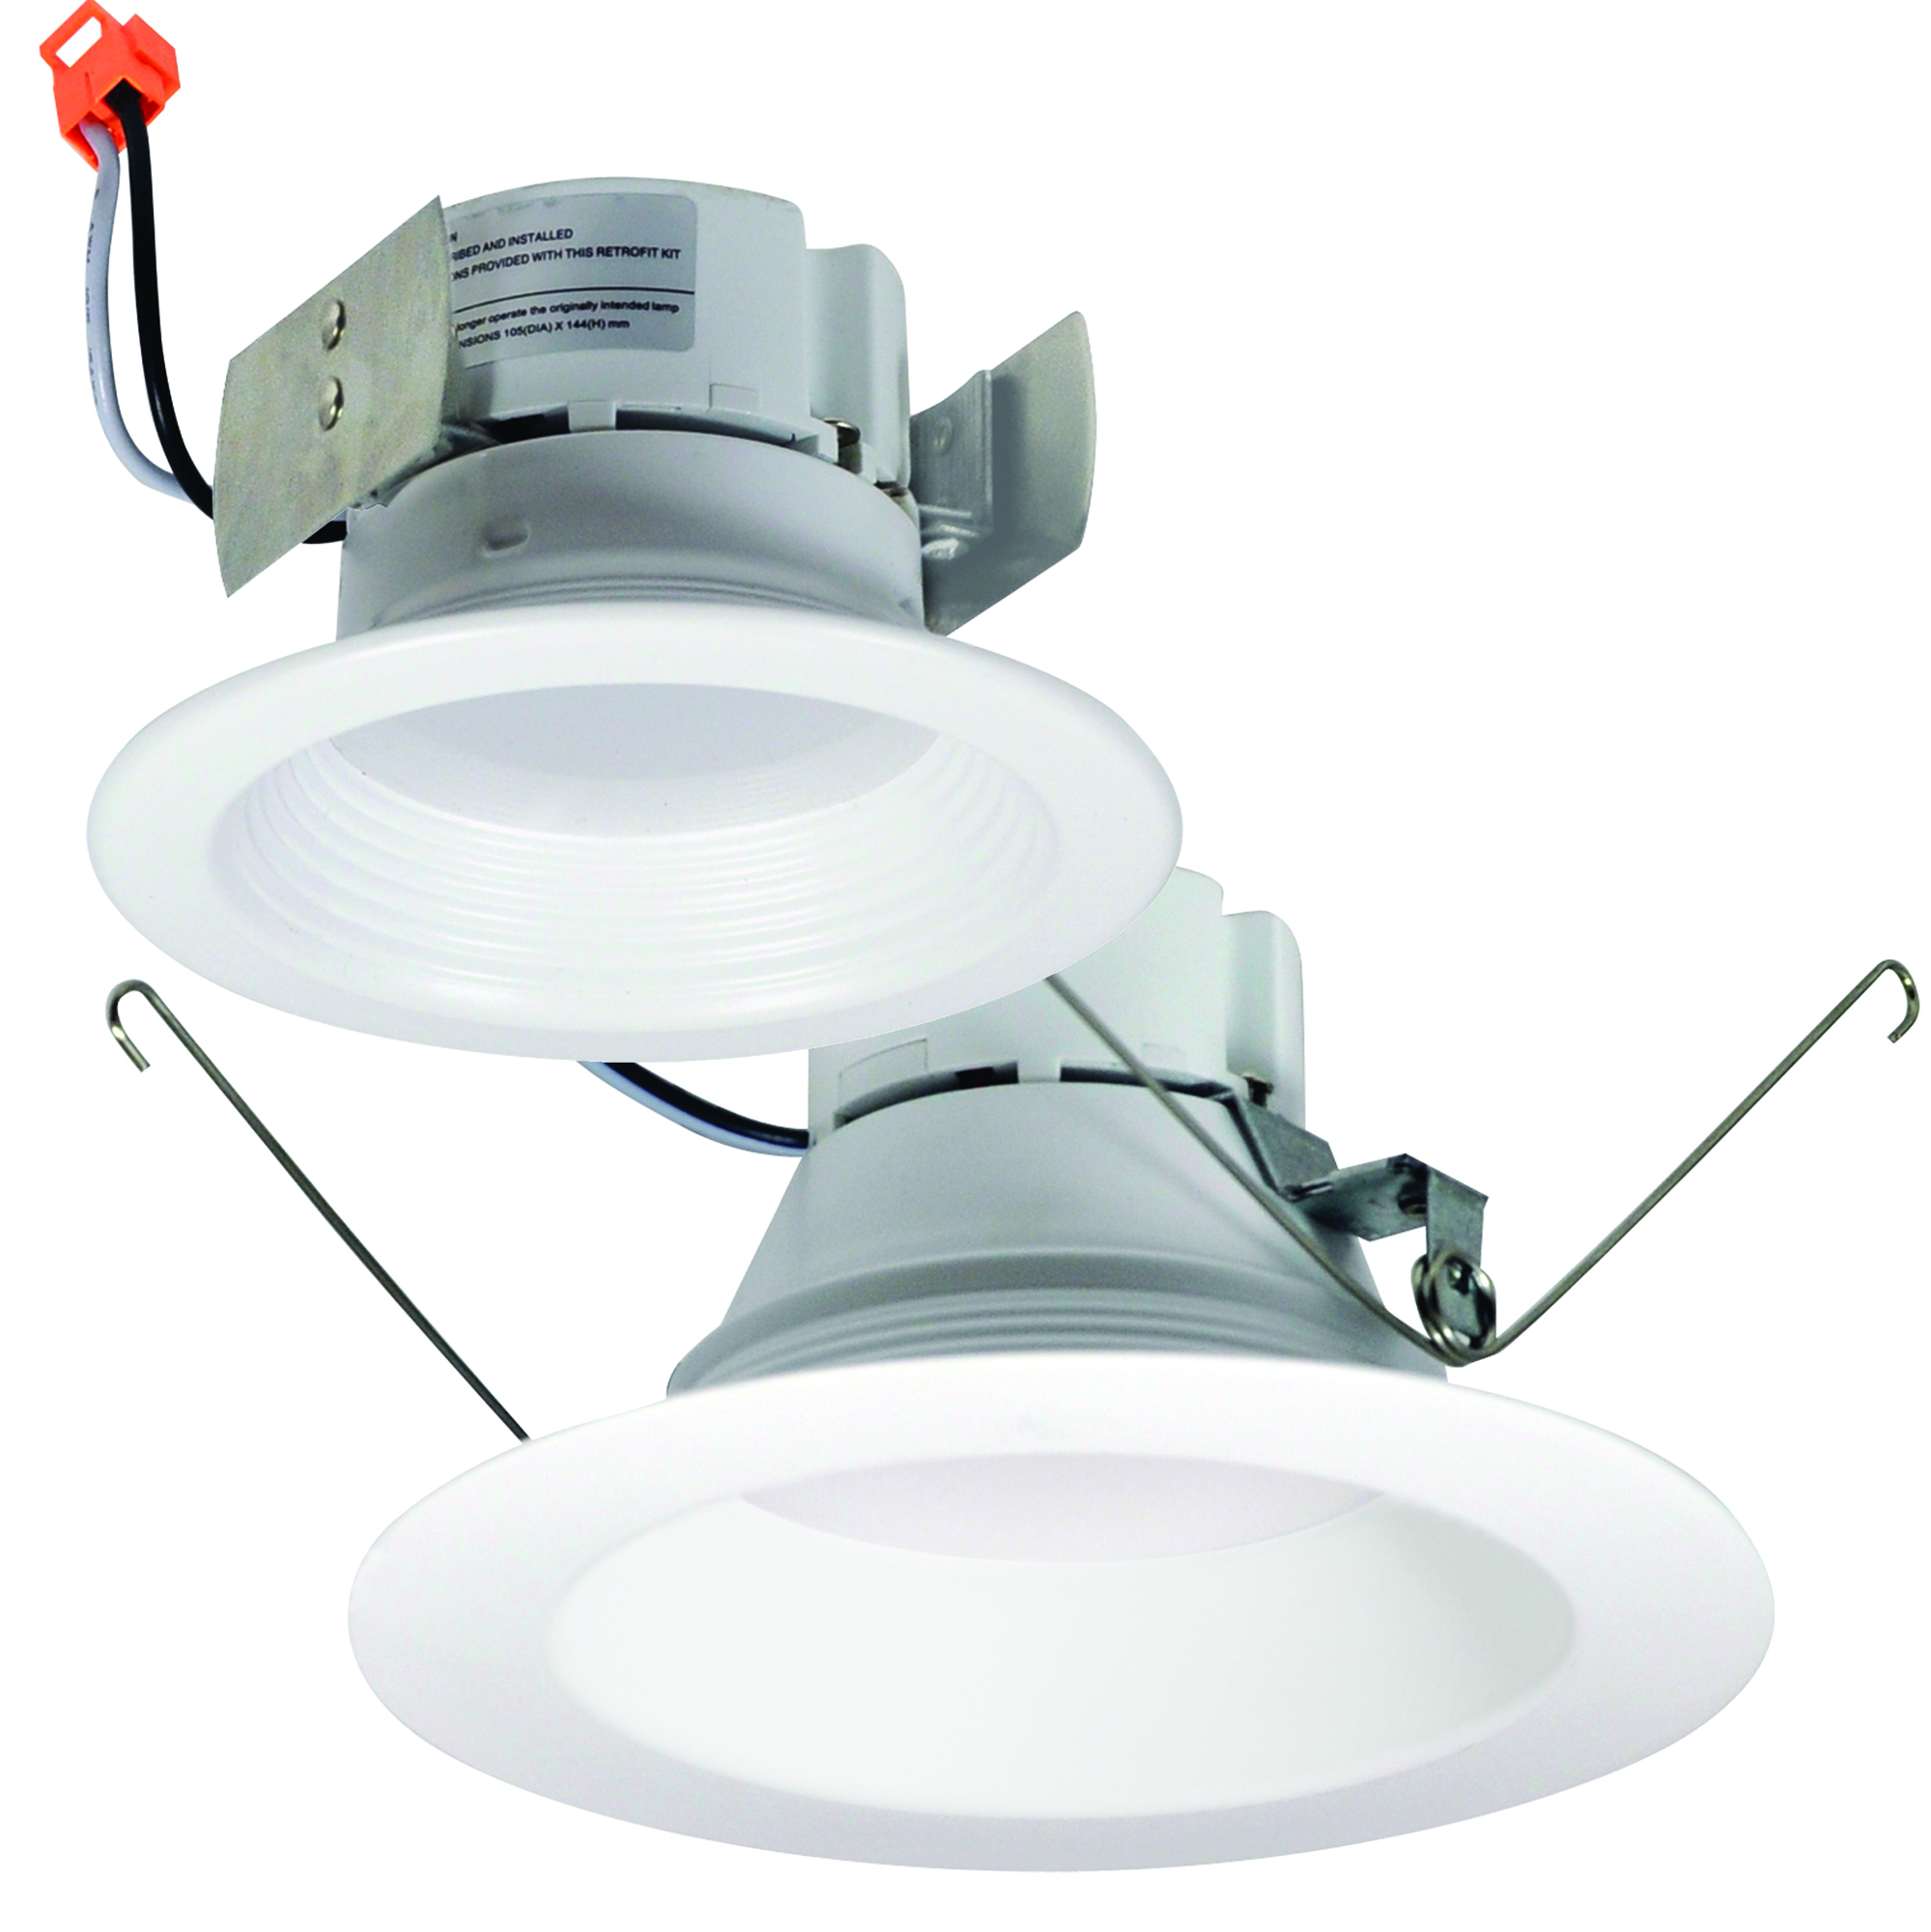 Lighting Supplies Online: Residential Products Online